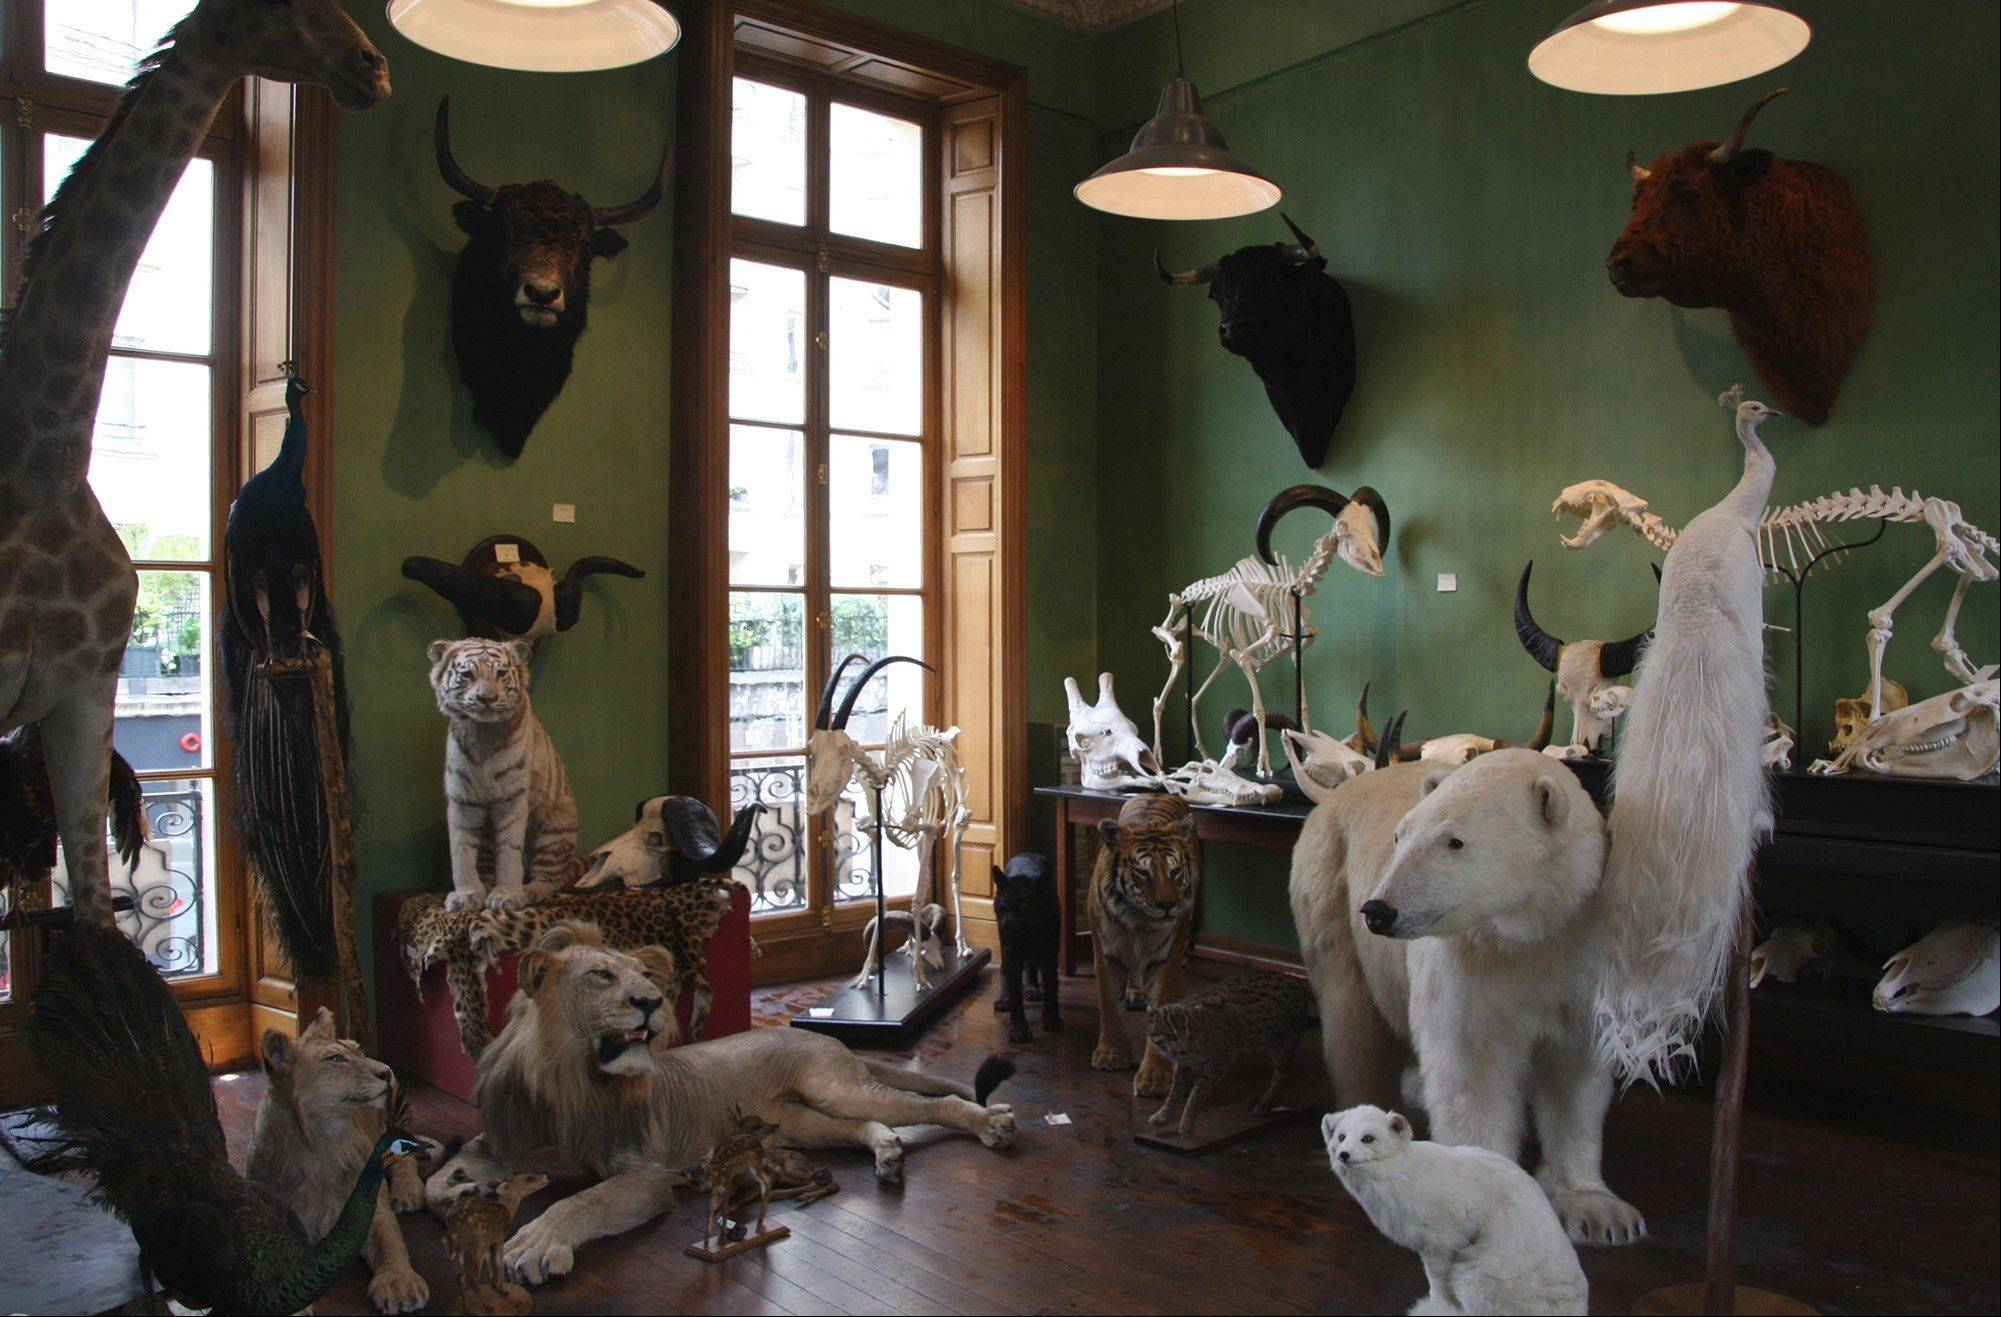 The showroom at Maison de Deyrolle in Paris showcases some of their many taxidermy masterpieces. Even if you're not a fan of this variety of stuffed animals, it's worth a visit to take in the incredible 18th-century architecture and impeccably handcrafted wood display cases.